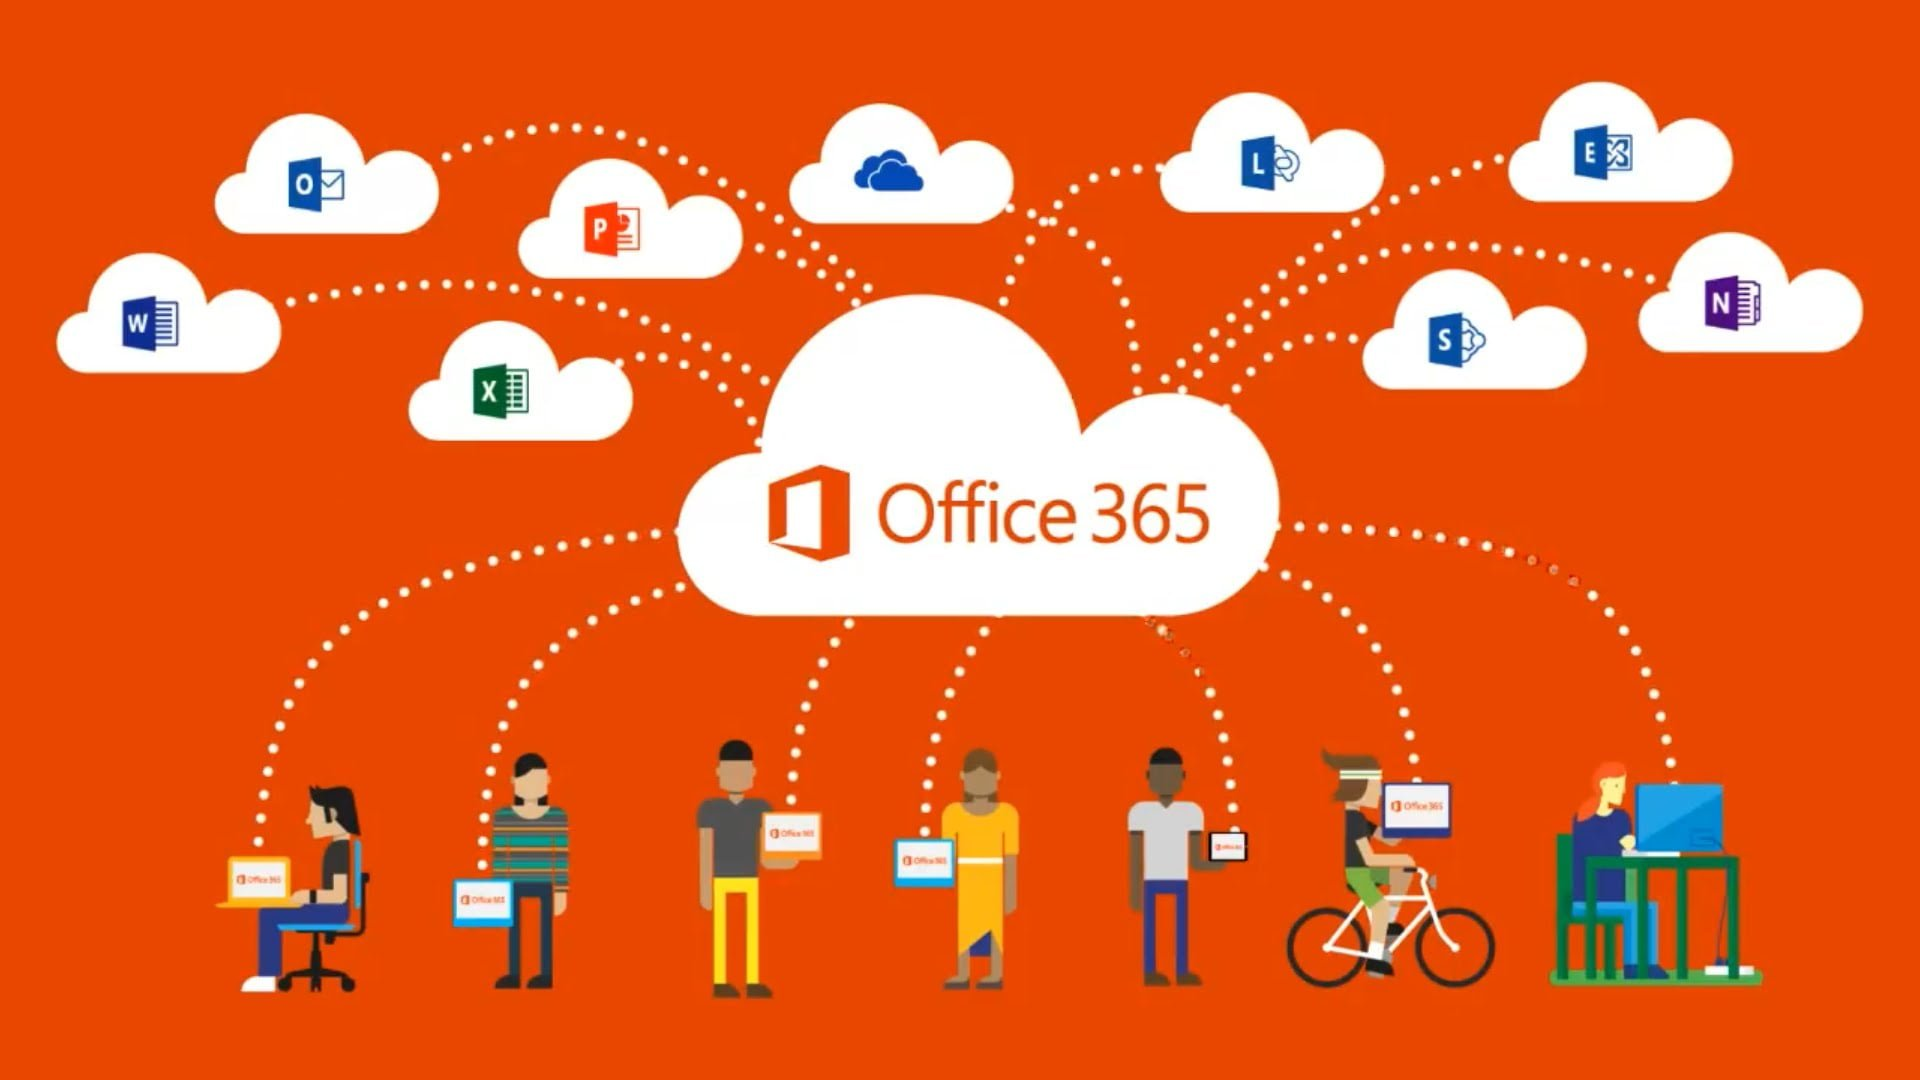 What are some of the features of Microsoft Office 365?